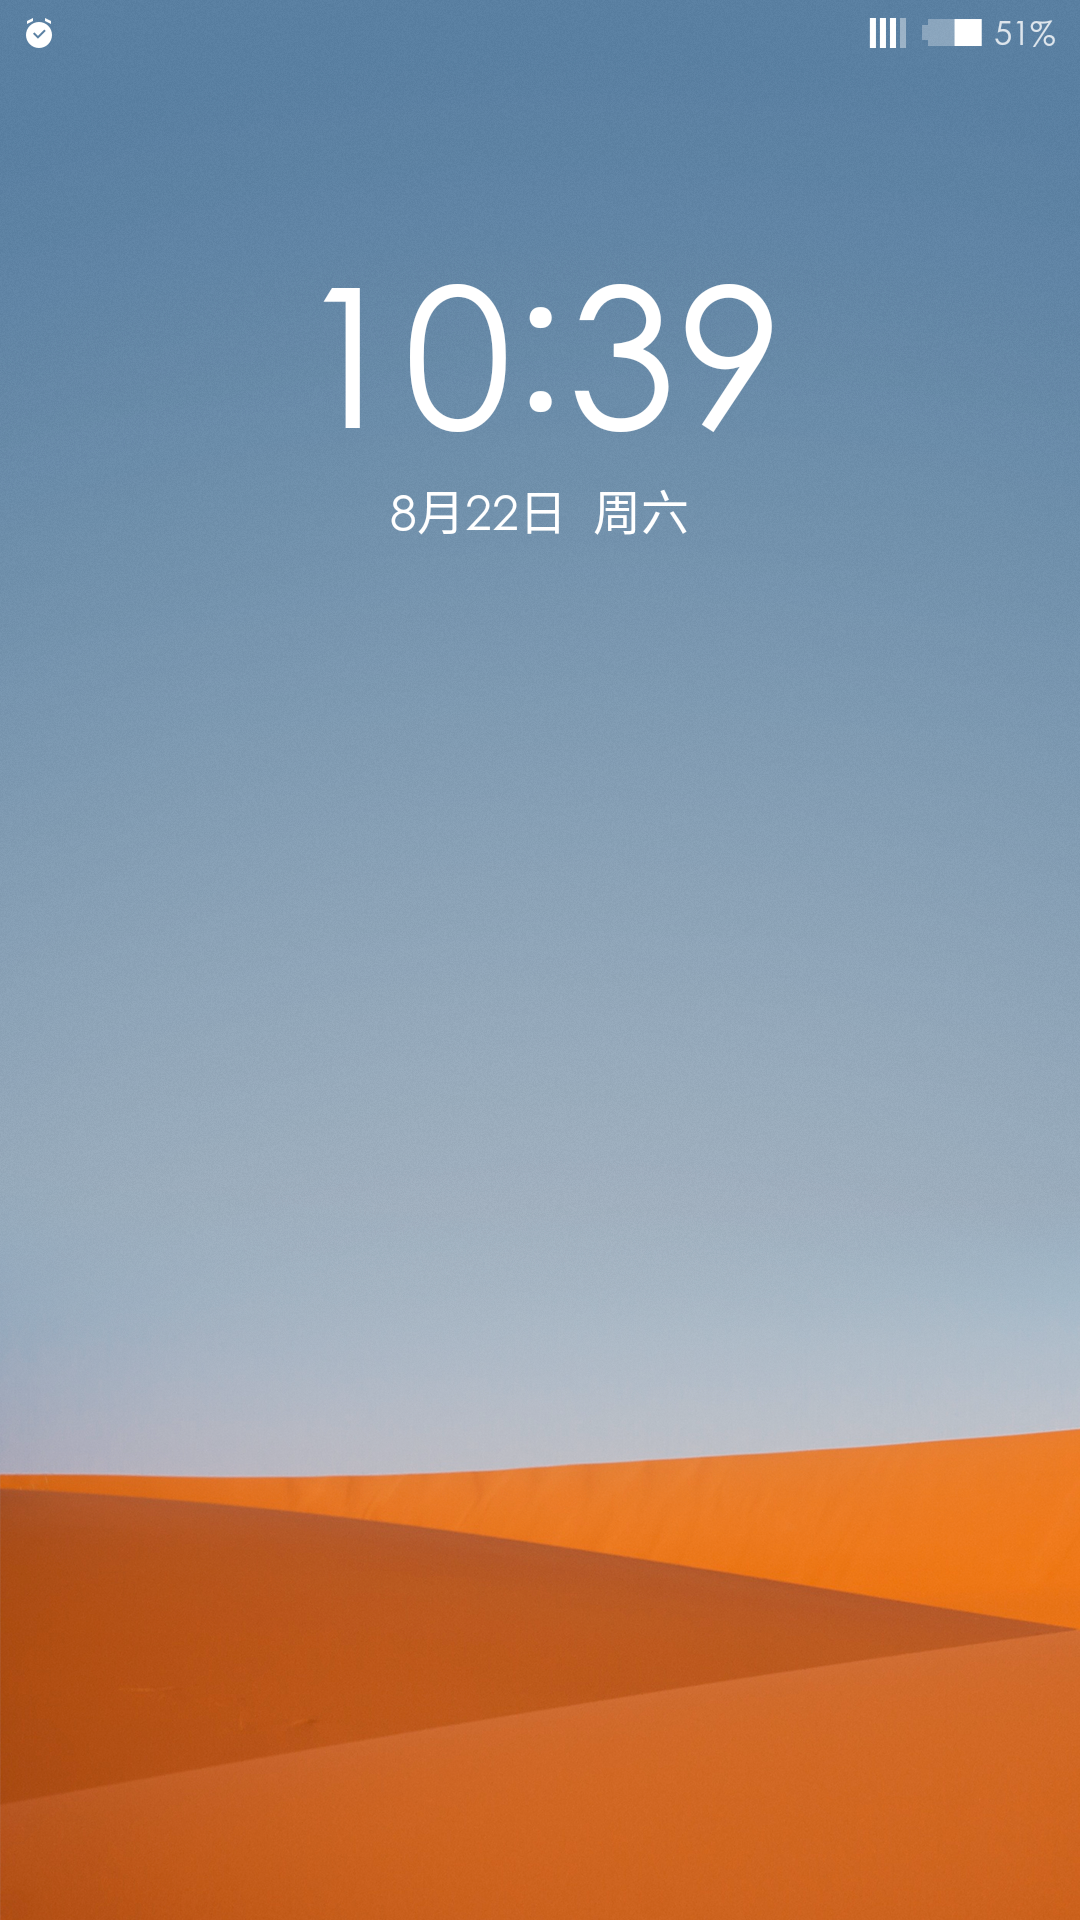 Screenshot_2015-08-22-10-39-49.png